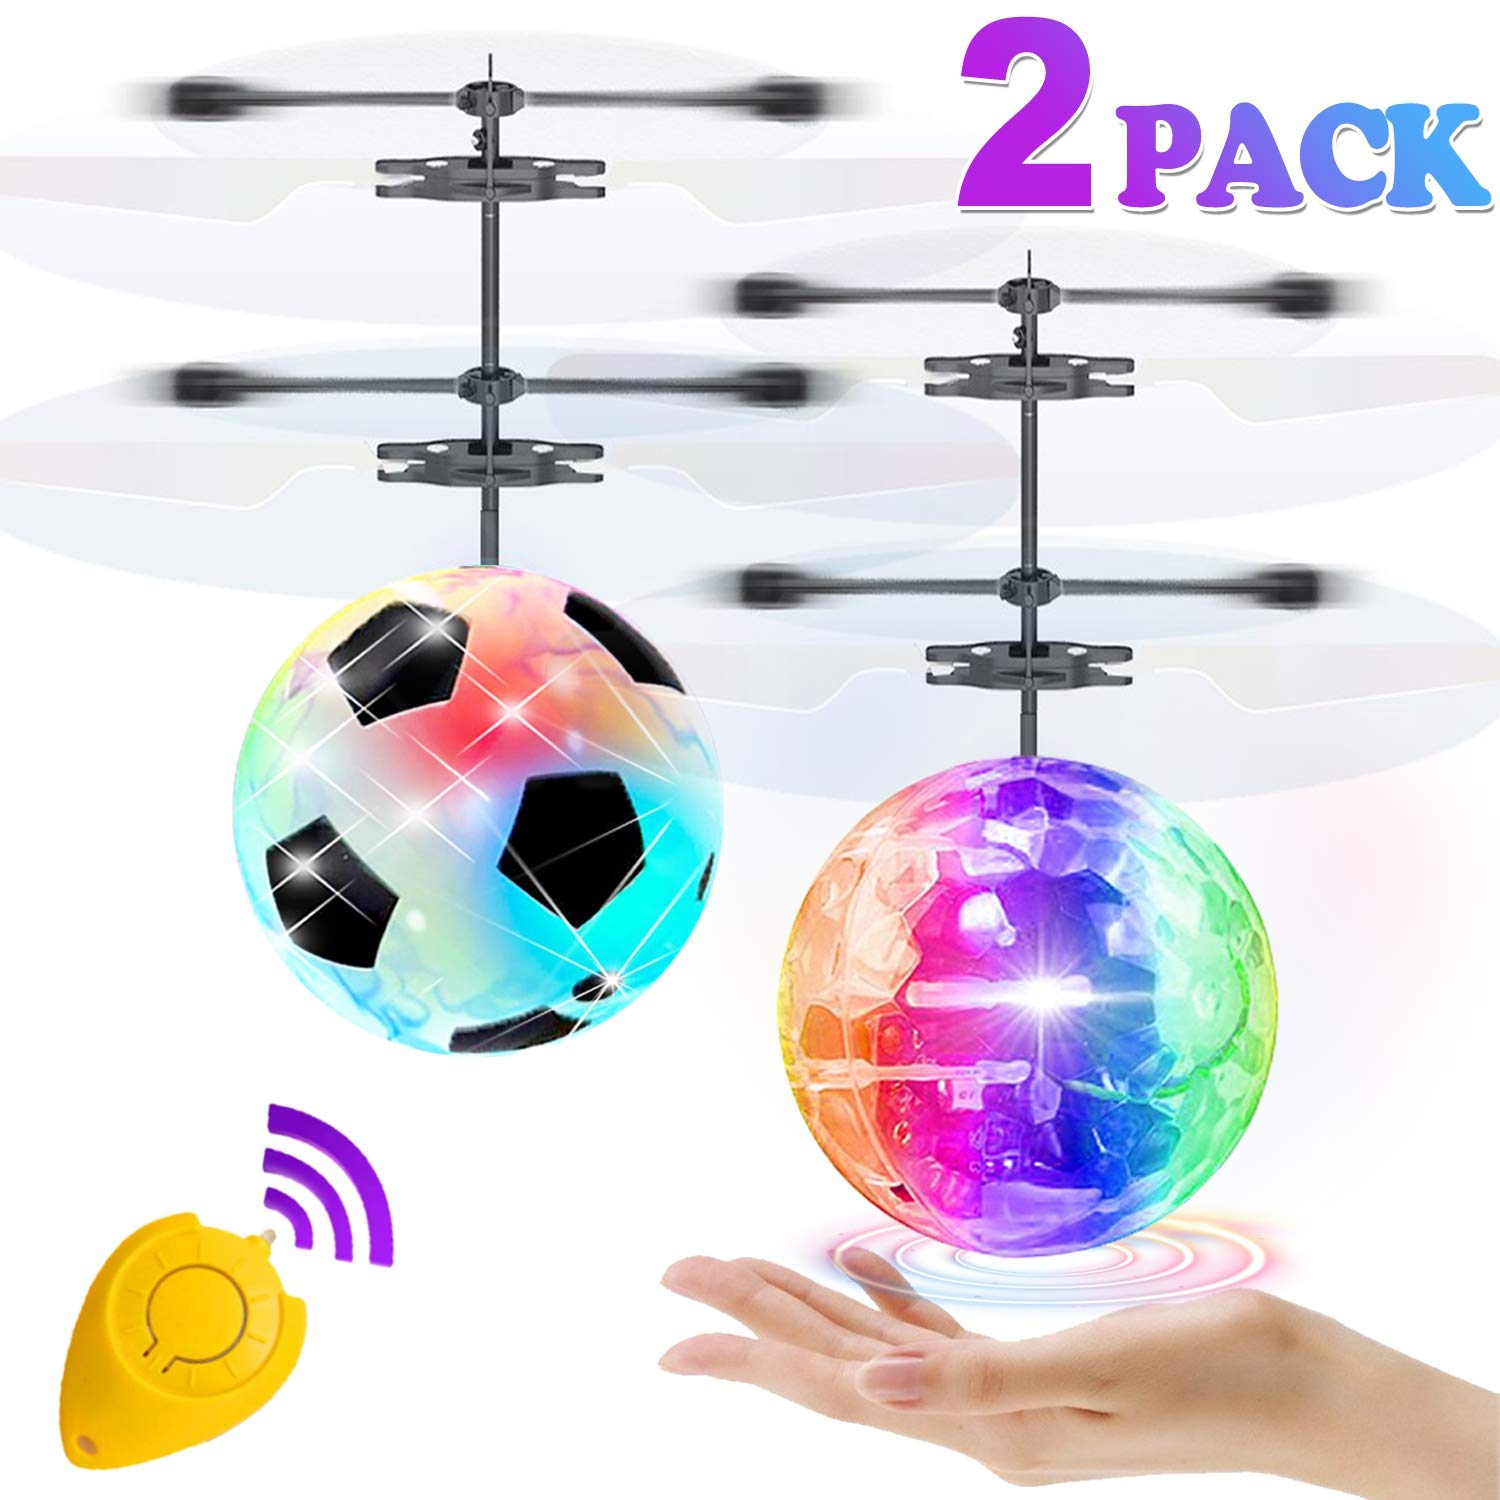 2 Pack Flying Ball Toys, RC Flying Toys for Kids Boys Girls Birthday Gifts Remote Control Drone Helicopter Rechargeable Light Up Ball Infrared Induction RC Drone for Indoor Outdoor Games by GBD